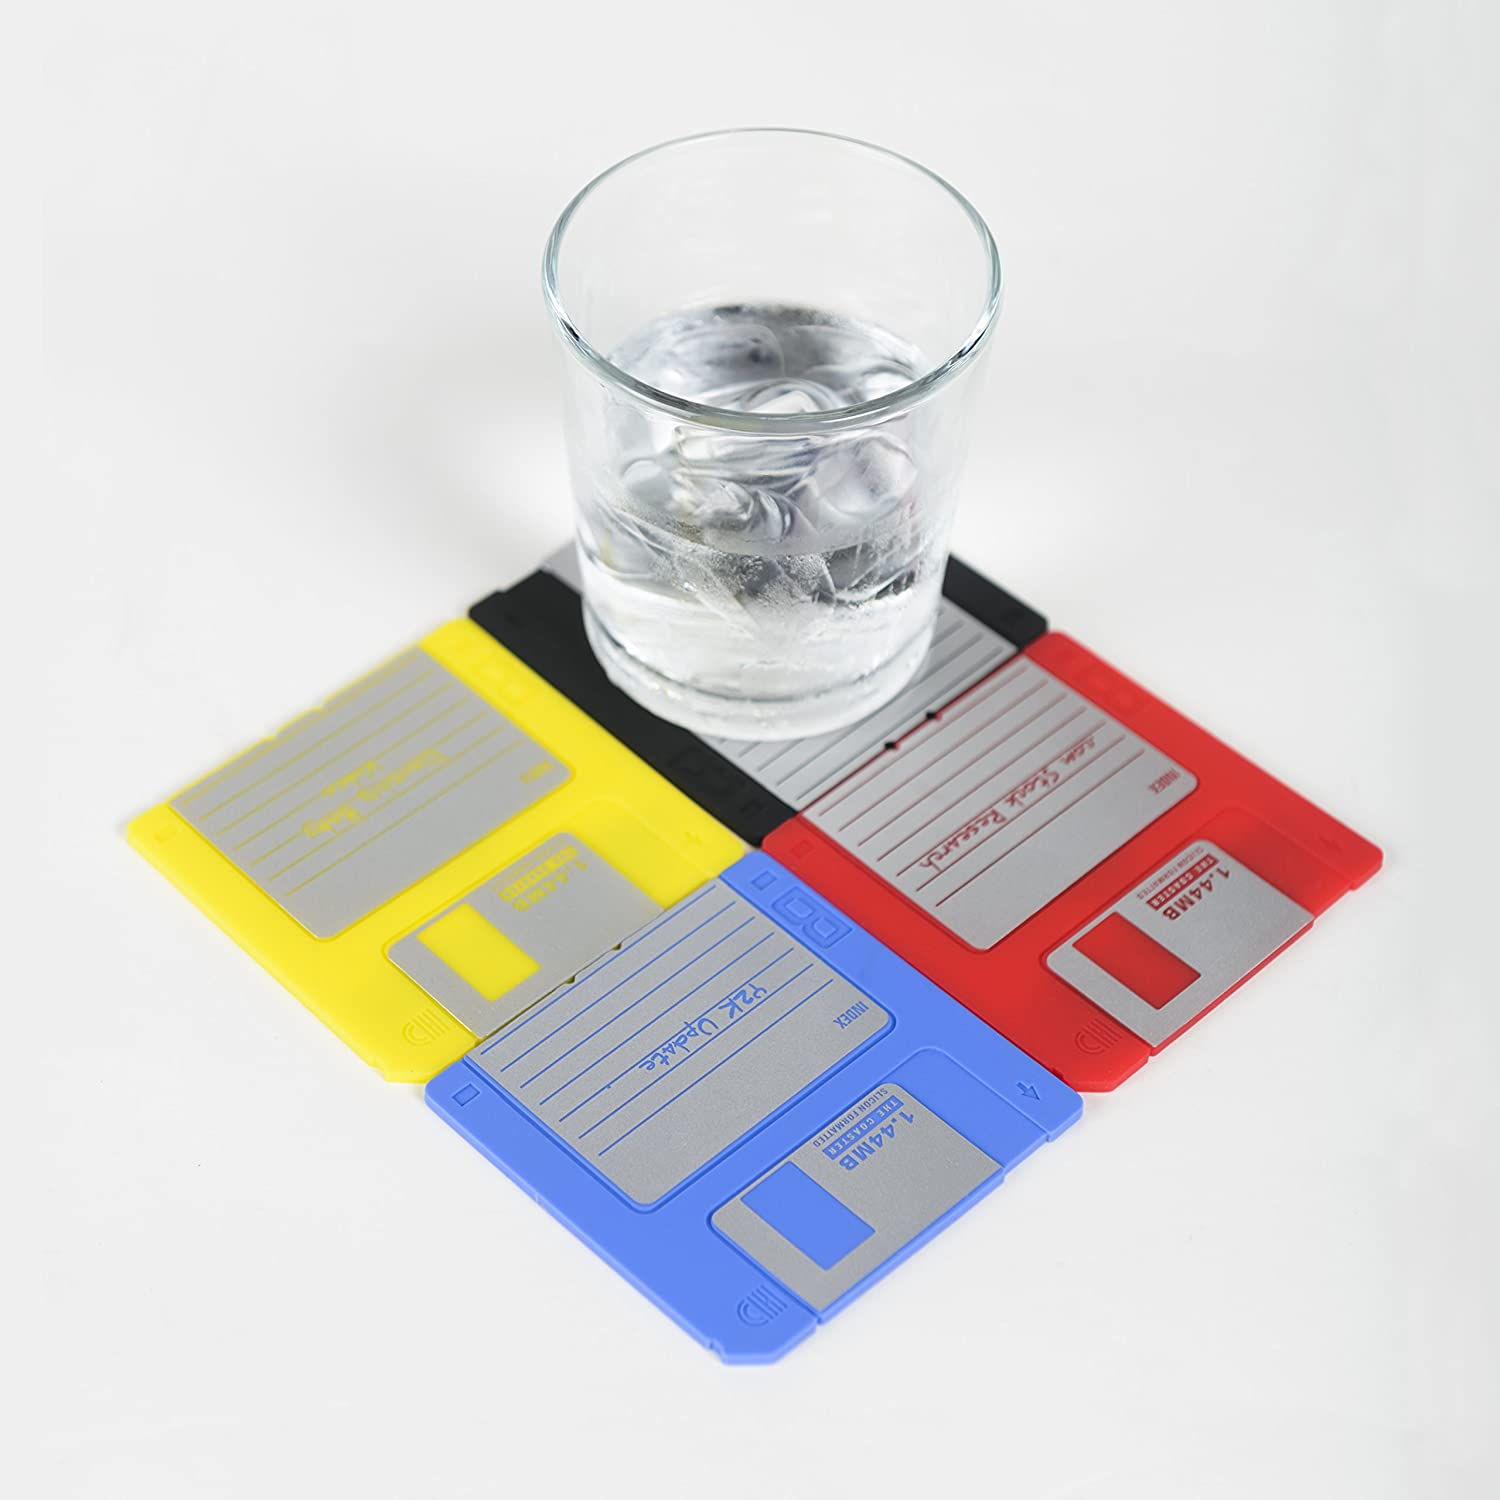 Nineties Nerd Retro Floppy Disk Non-slip Silicone Drink Coaster Set by Modern Coaster